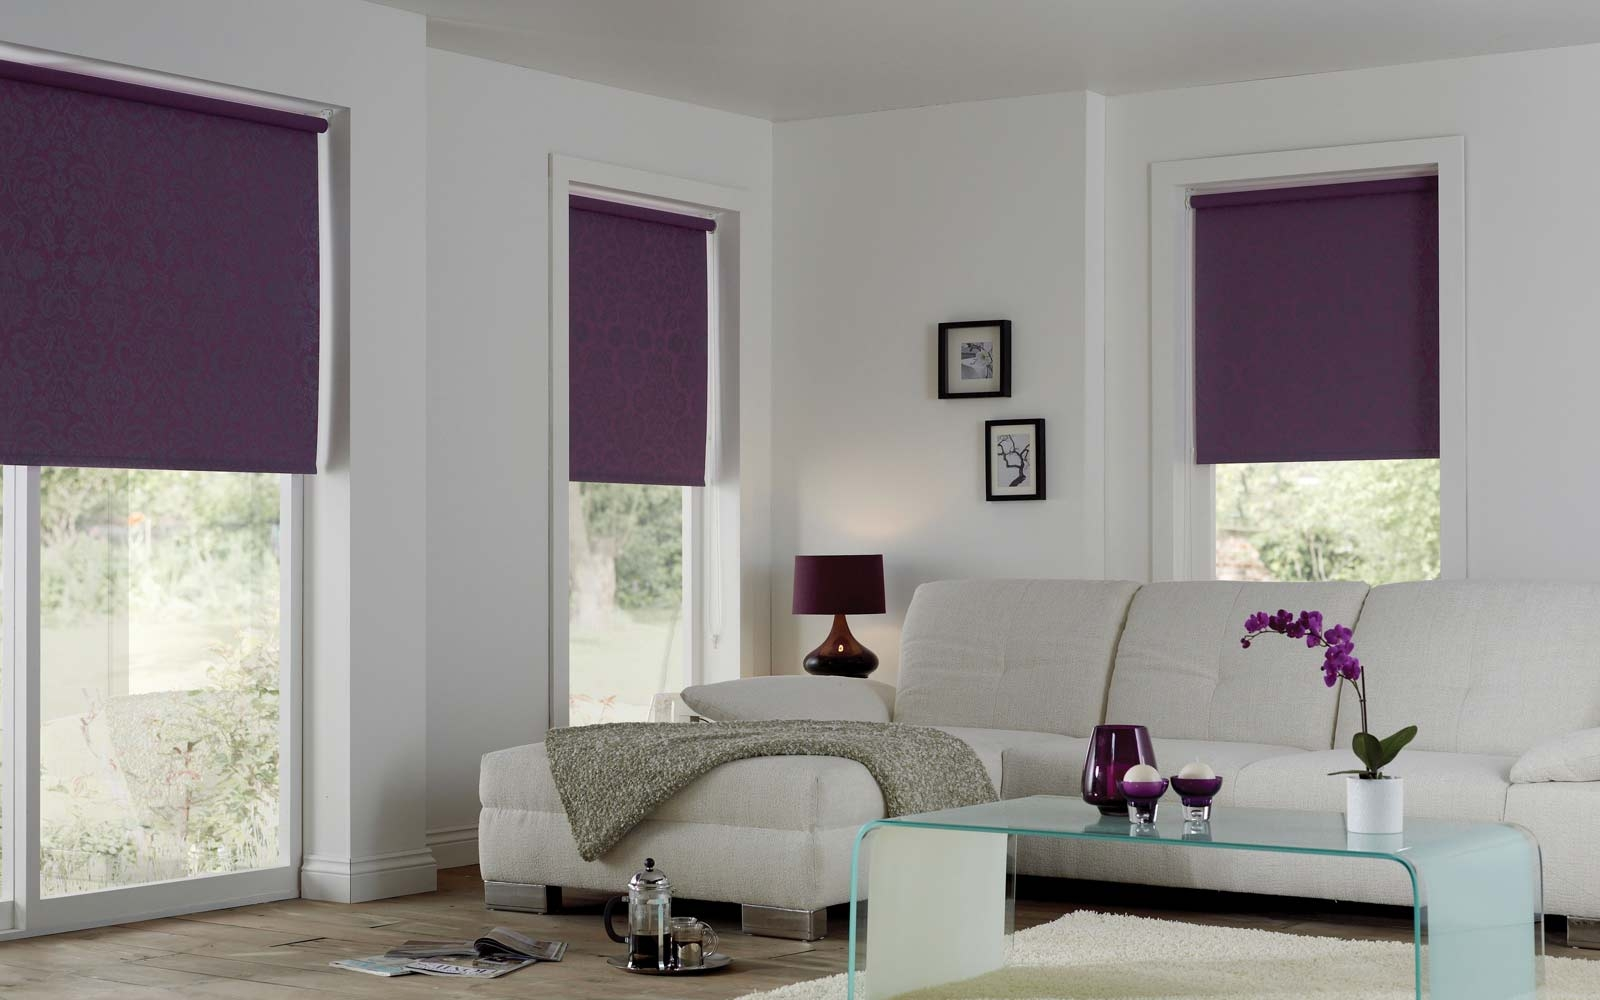 Blackout Blinds Surrey Blinds Shutters For Blackout Roman Blind (View 6 of 15)